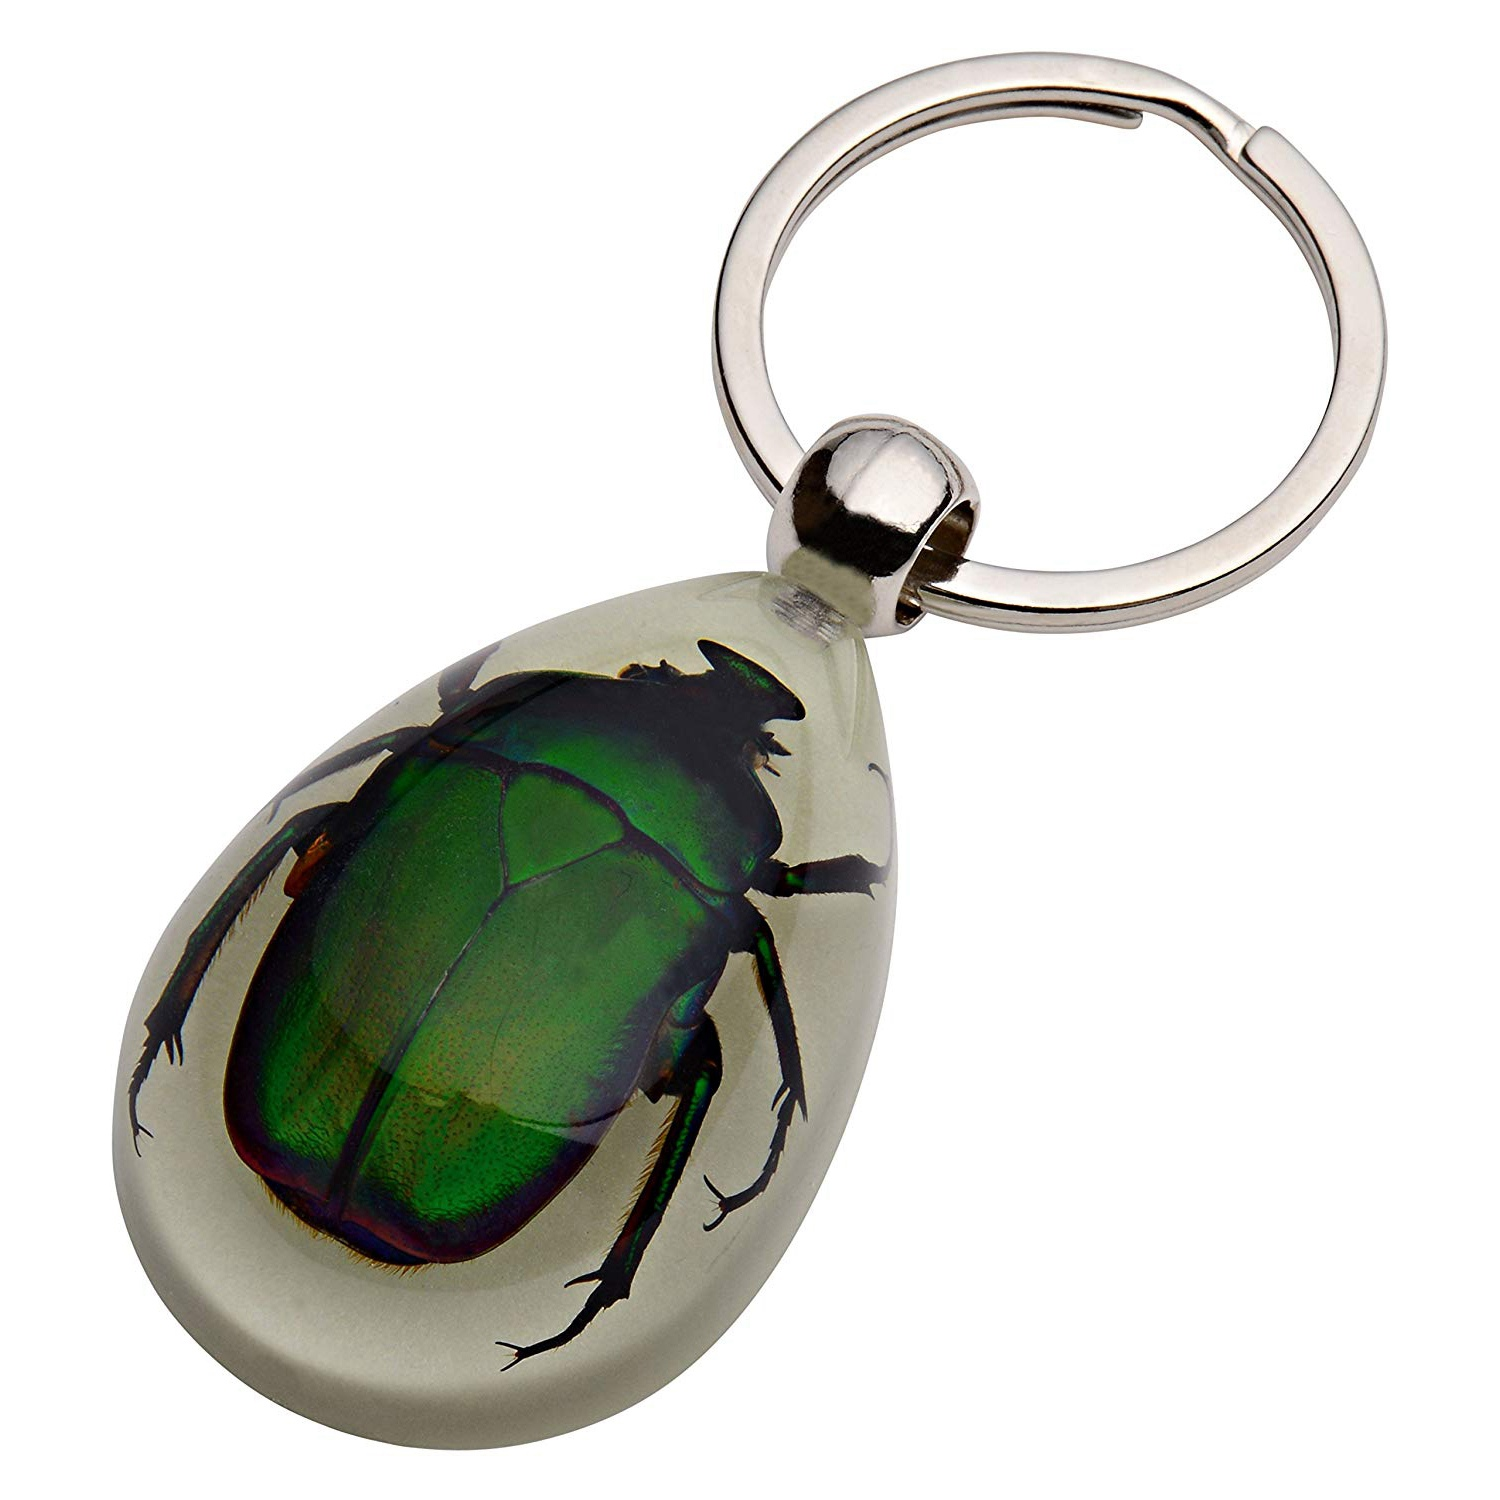 10 KEYCHAIN BEE COOL GLOW LUCITE INSECT JEWELRY TAXIDERMY GIFT